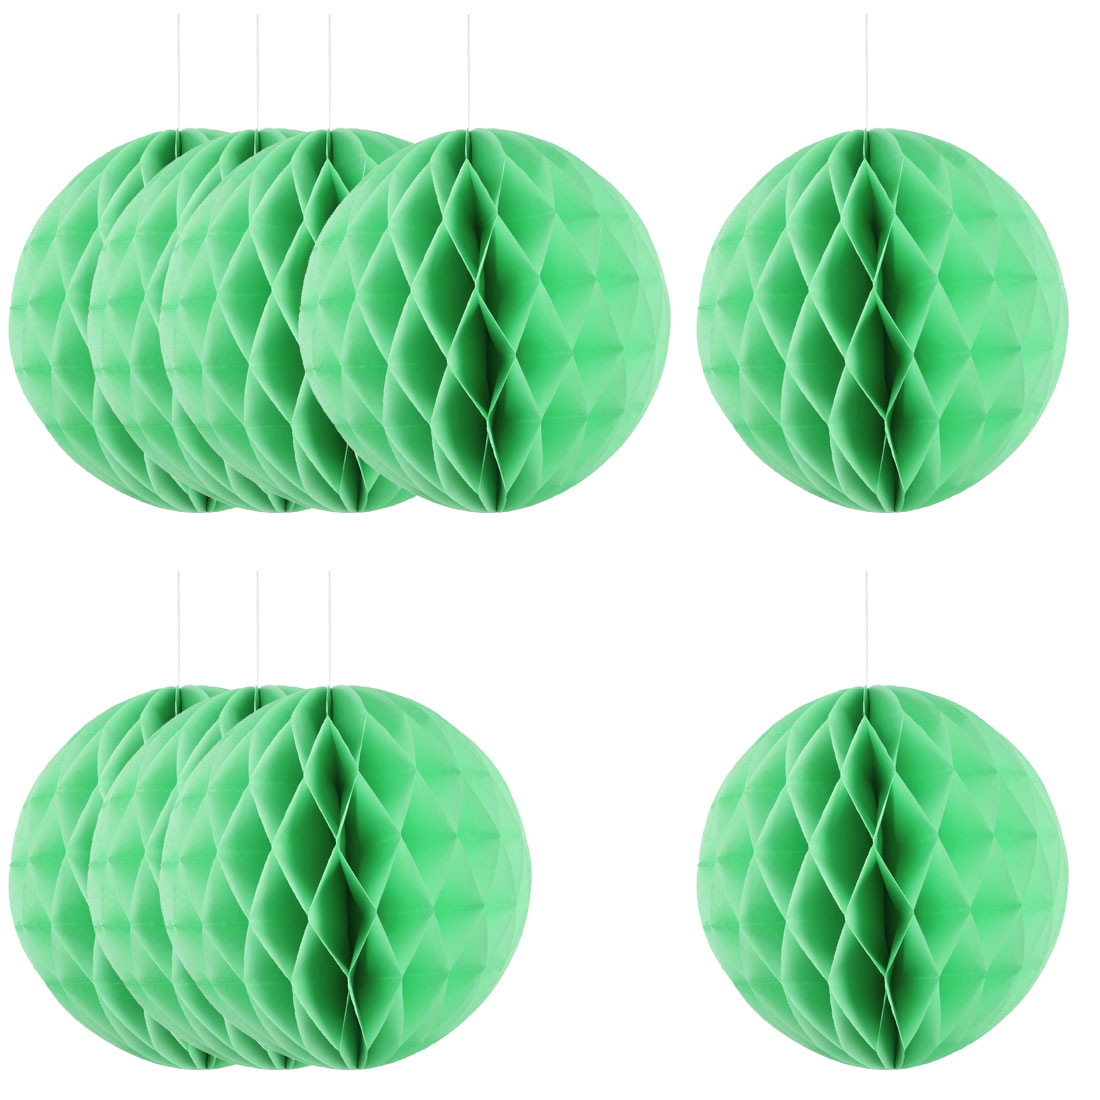 Home Hotel Paper Wall Window Door DIY Decoration Honeycomb Ball Pale Green 12 Inch Dia 10 Pcs